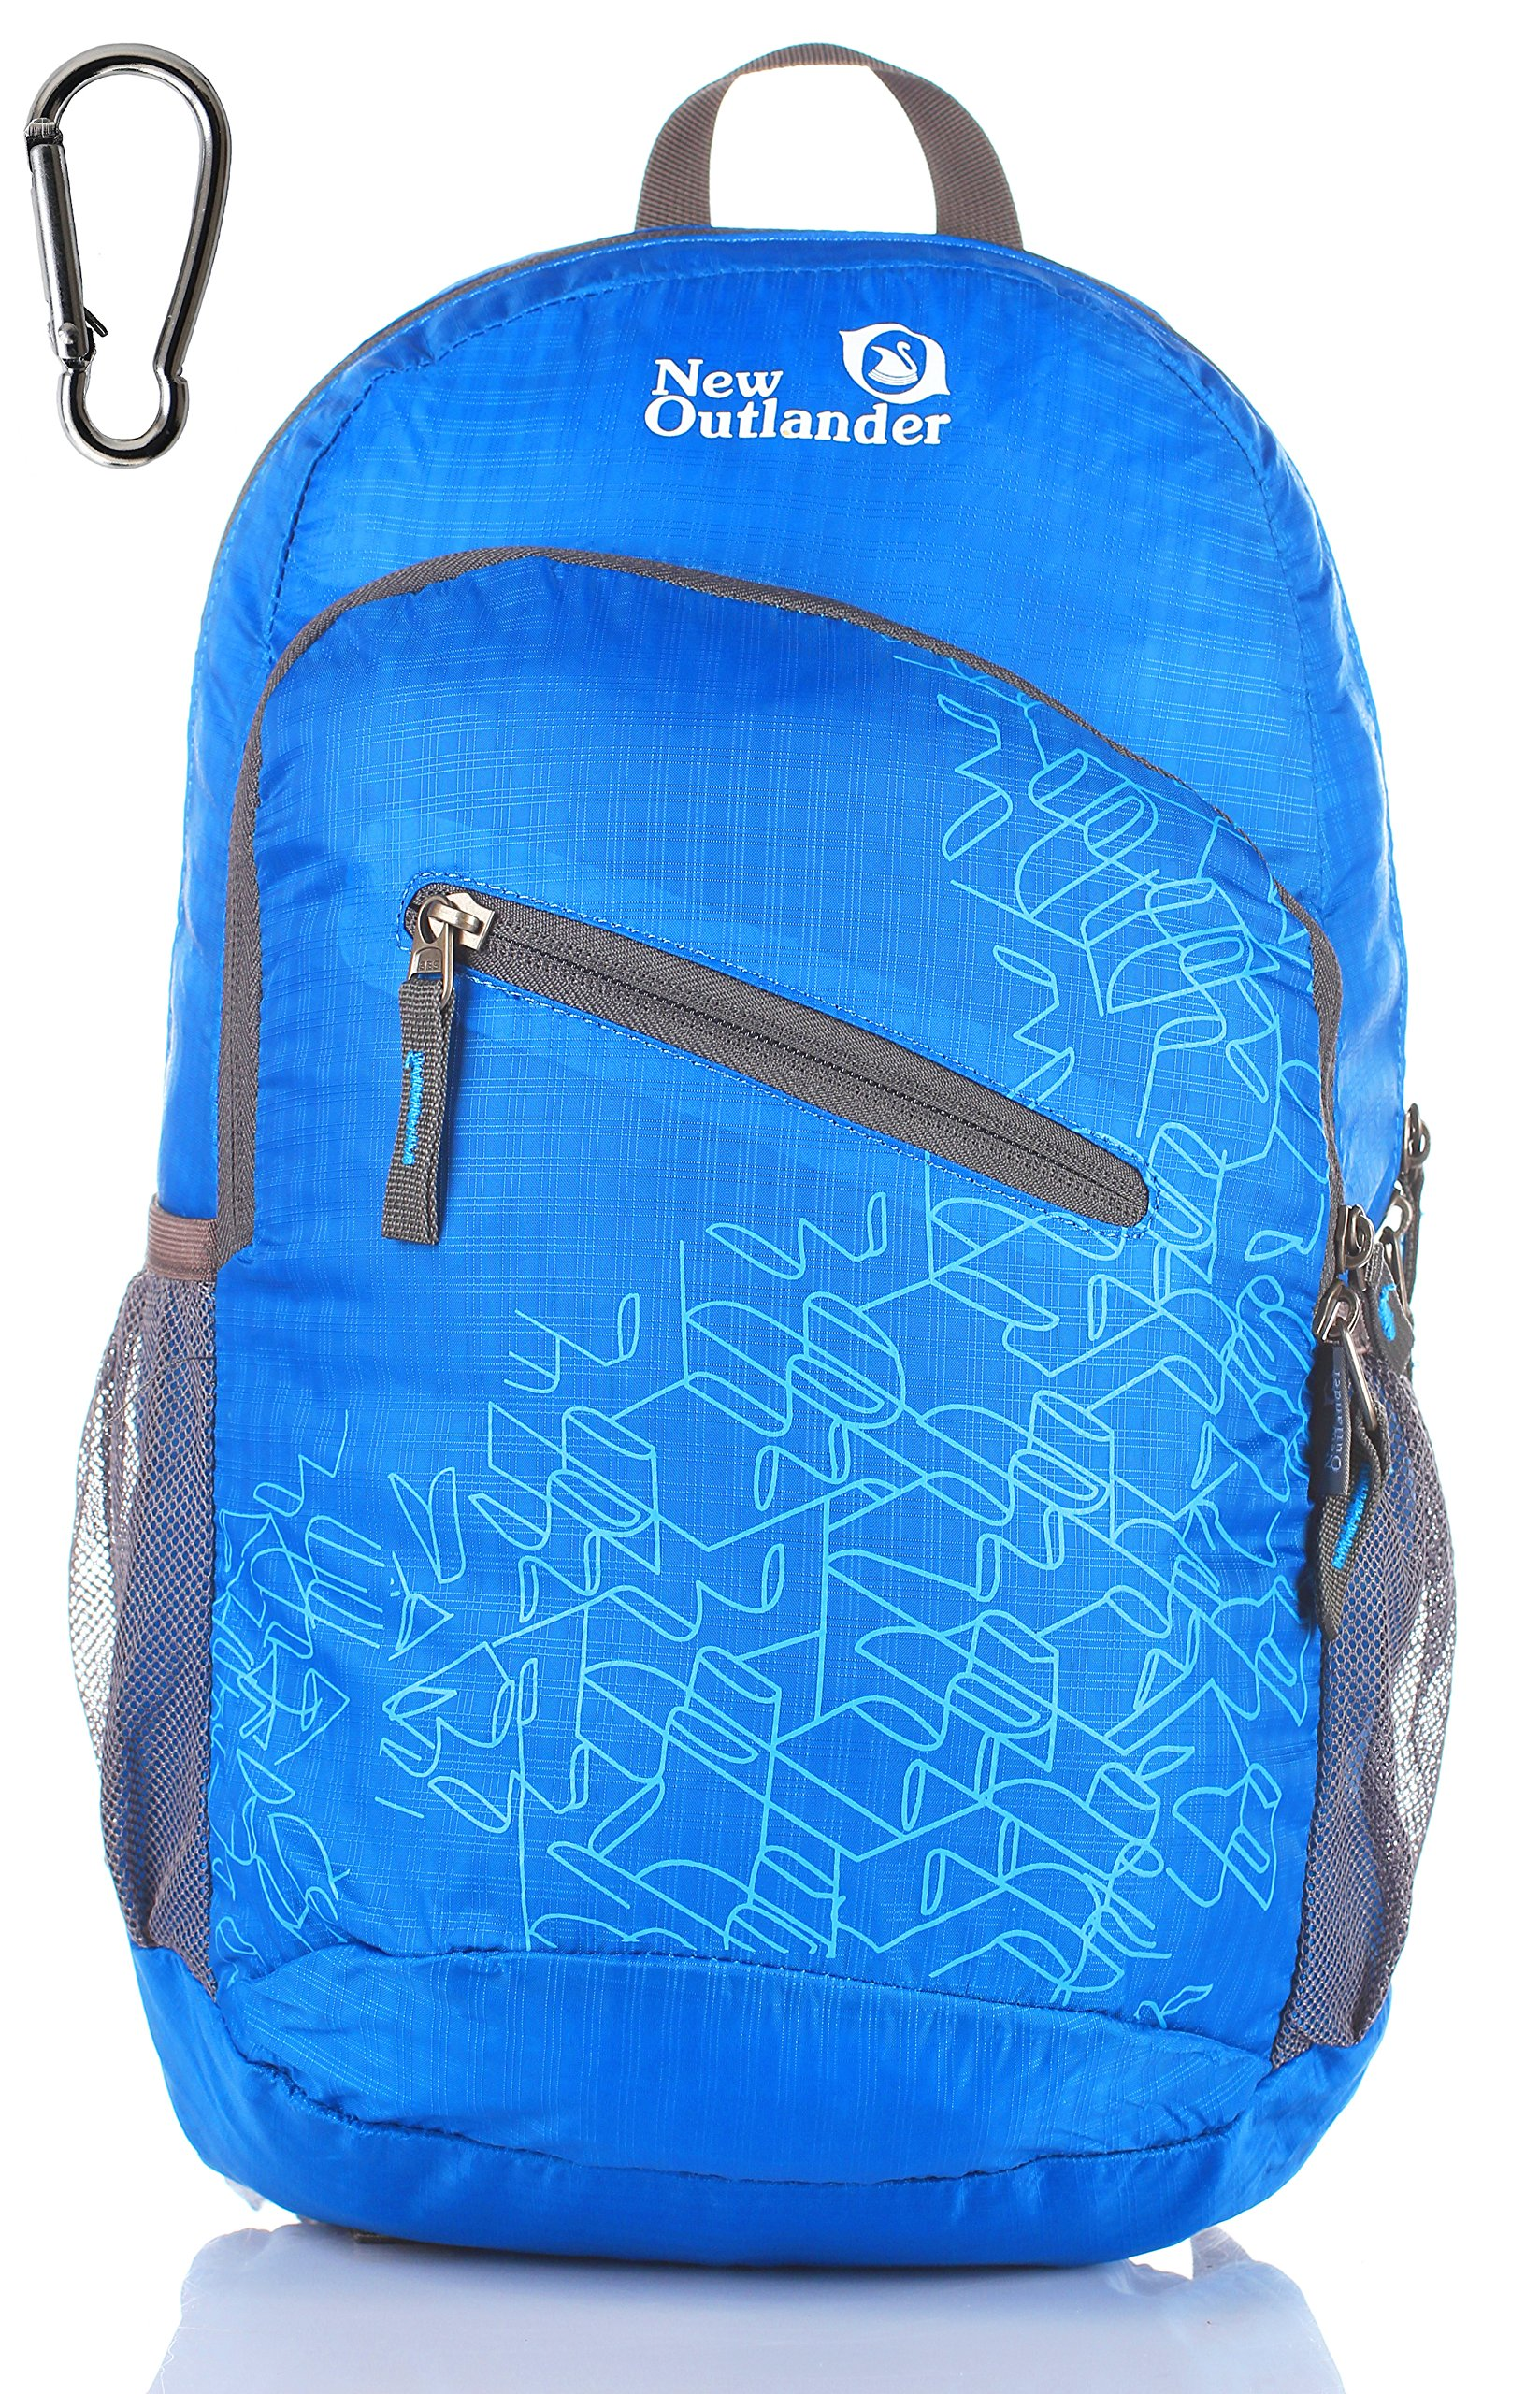 Most Durable Packable Lightweight Travel Hiking Backpack Daypack ... 71eb8ff363d72